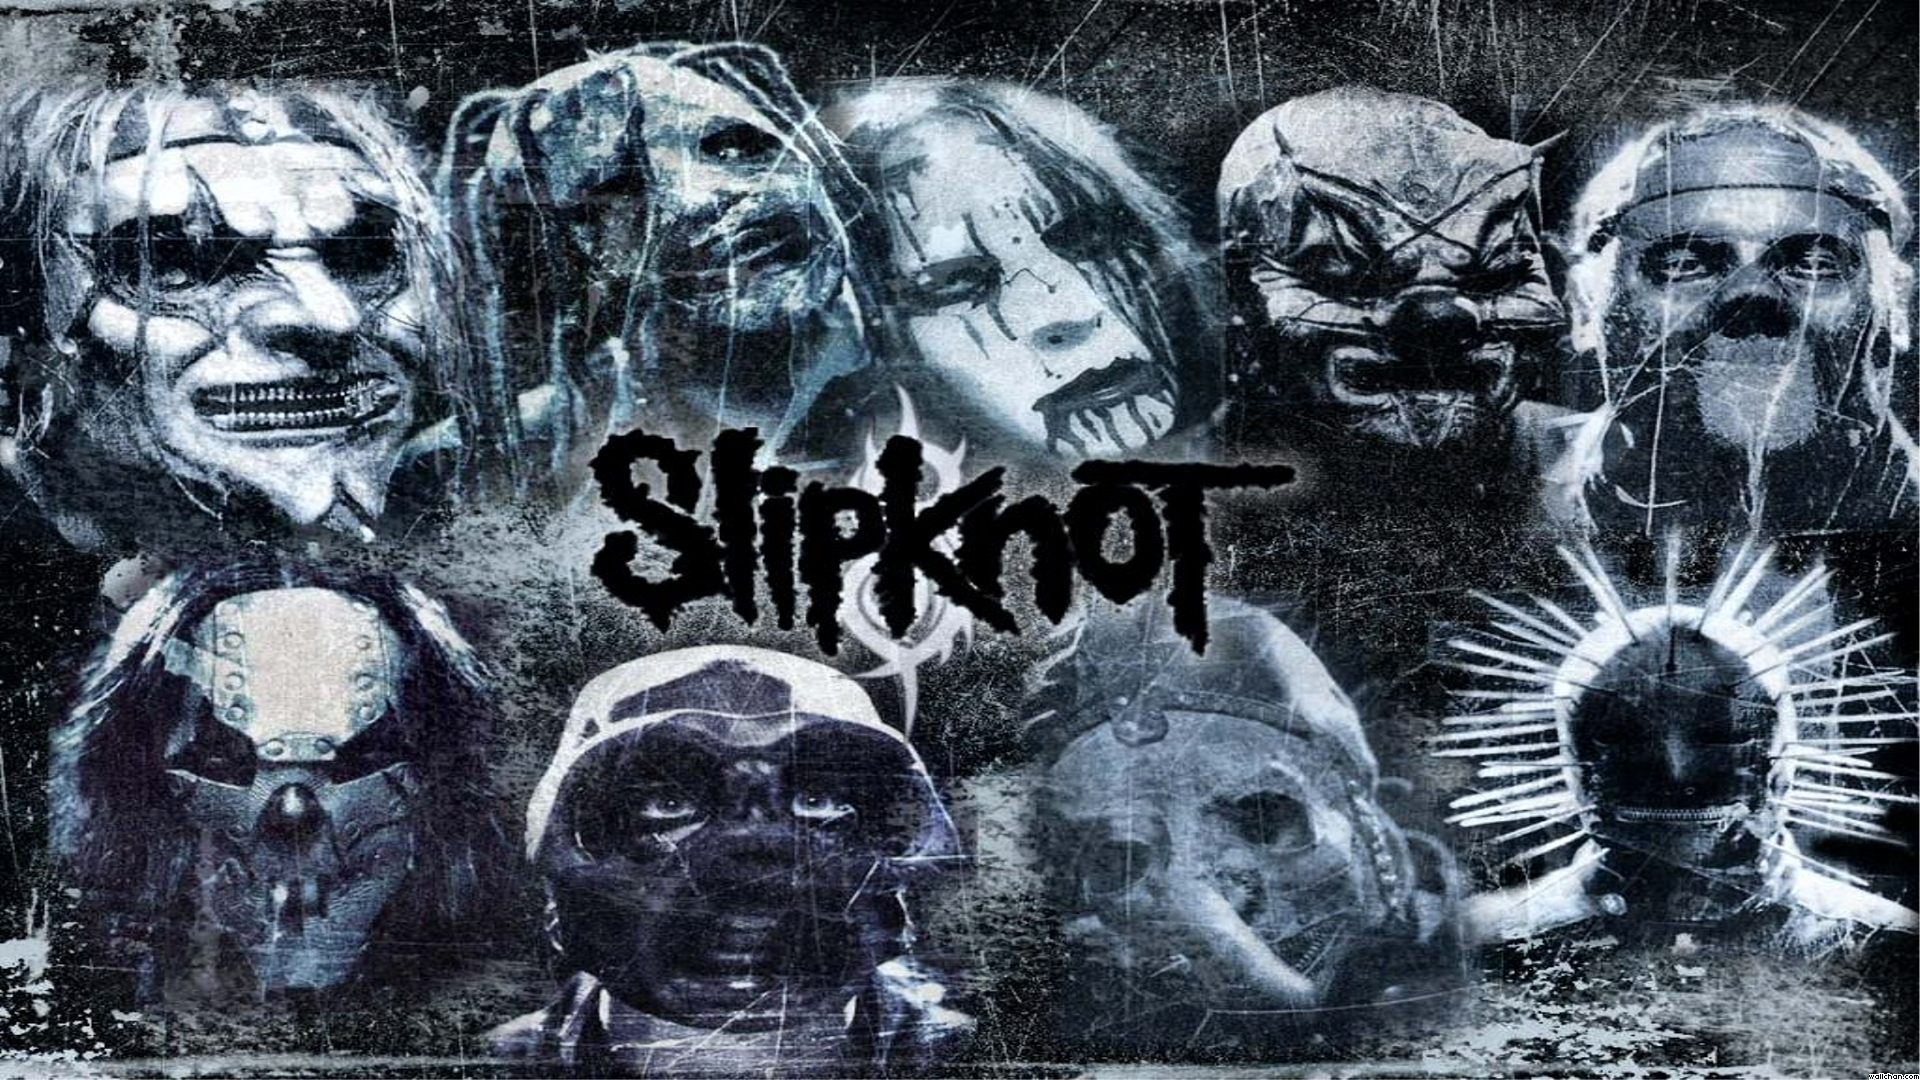 Slipknot Desktop Wallpapers Slipknot Black Metal 1765062 Hd Wallpaper Backgrounds Download